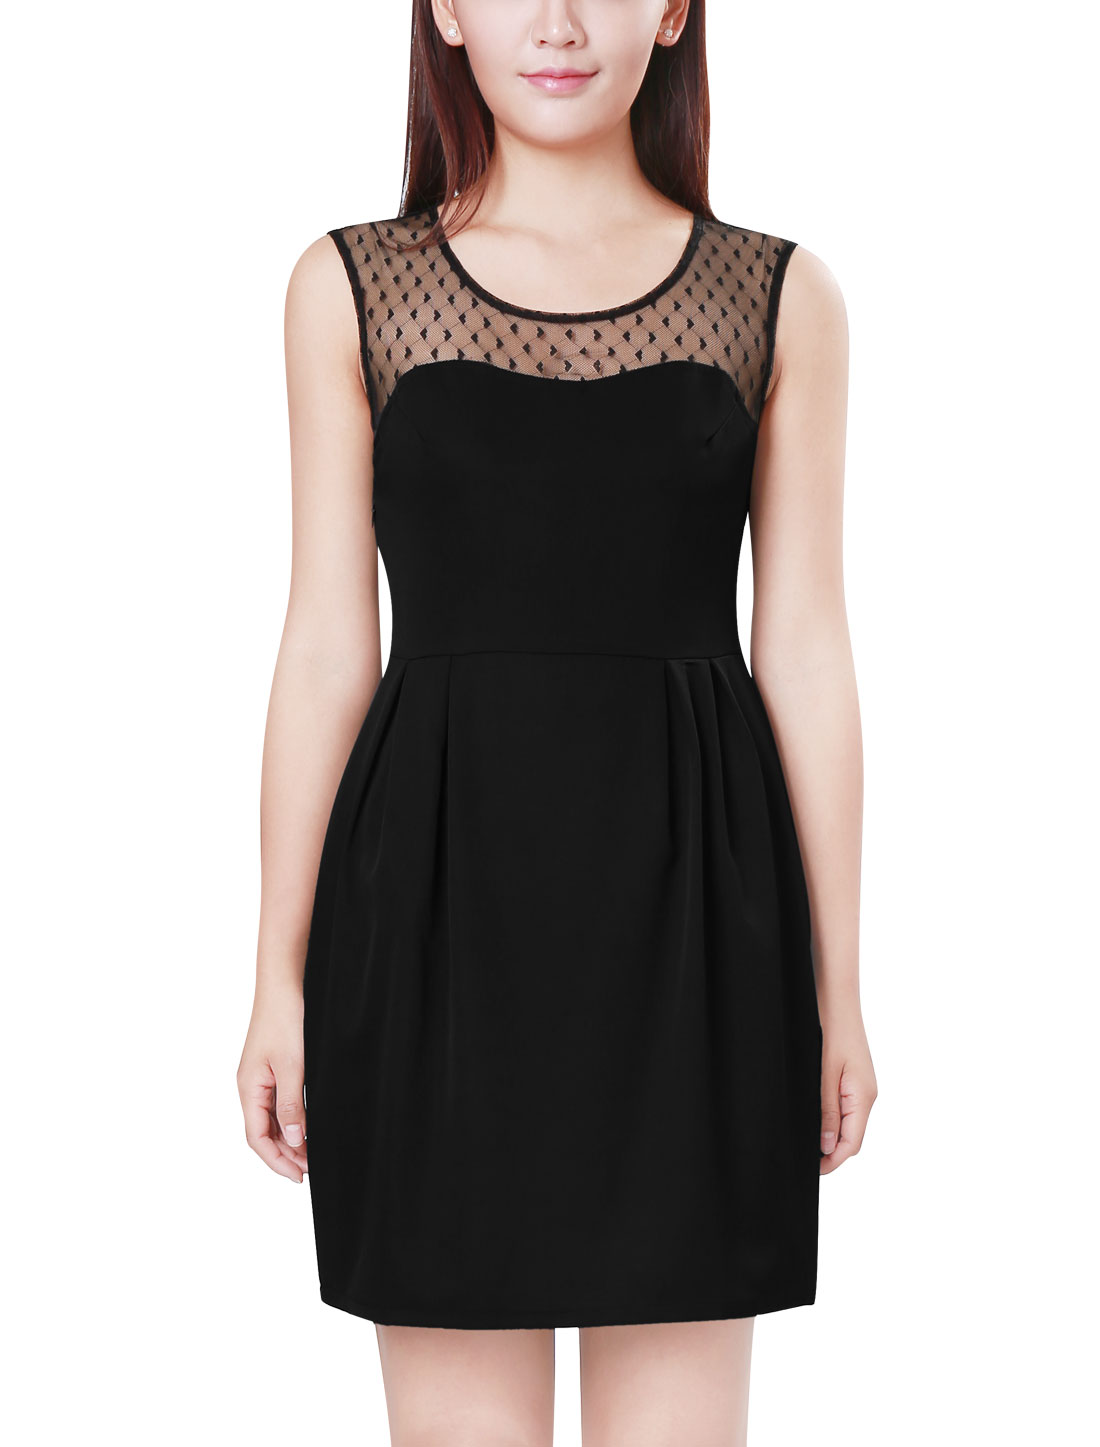 Ladies Mesh Splicing Design Round Neck Black Dress XL